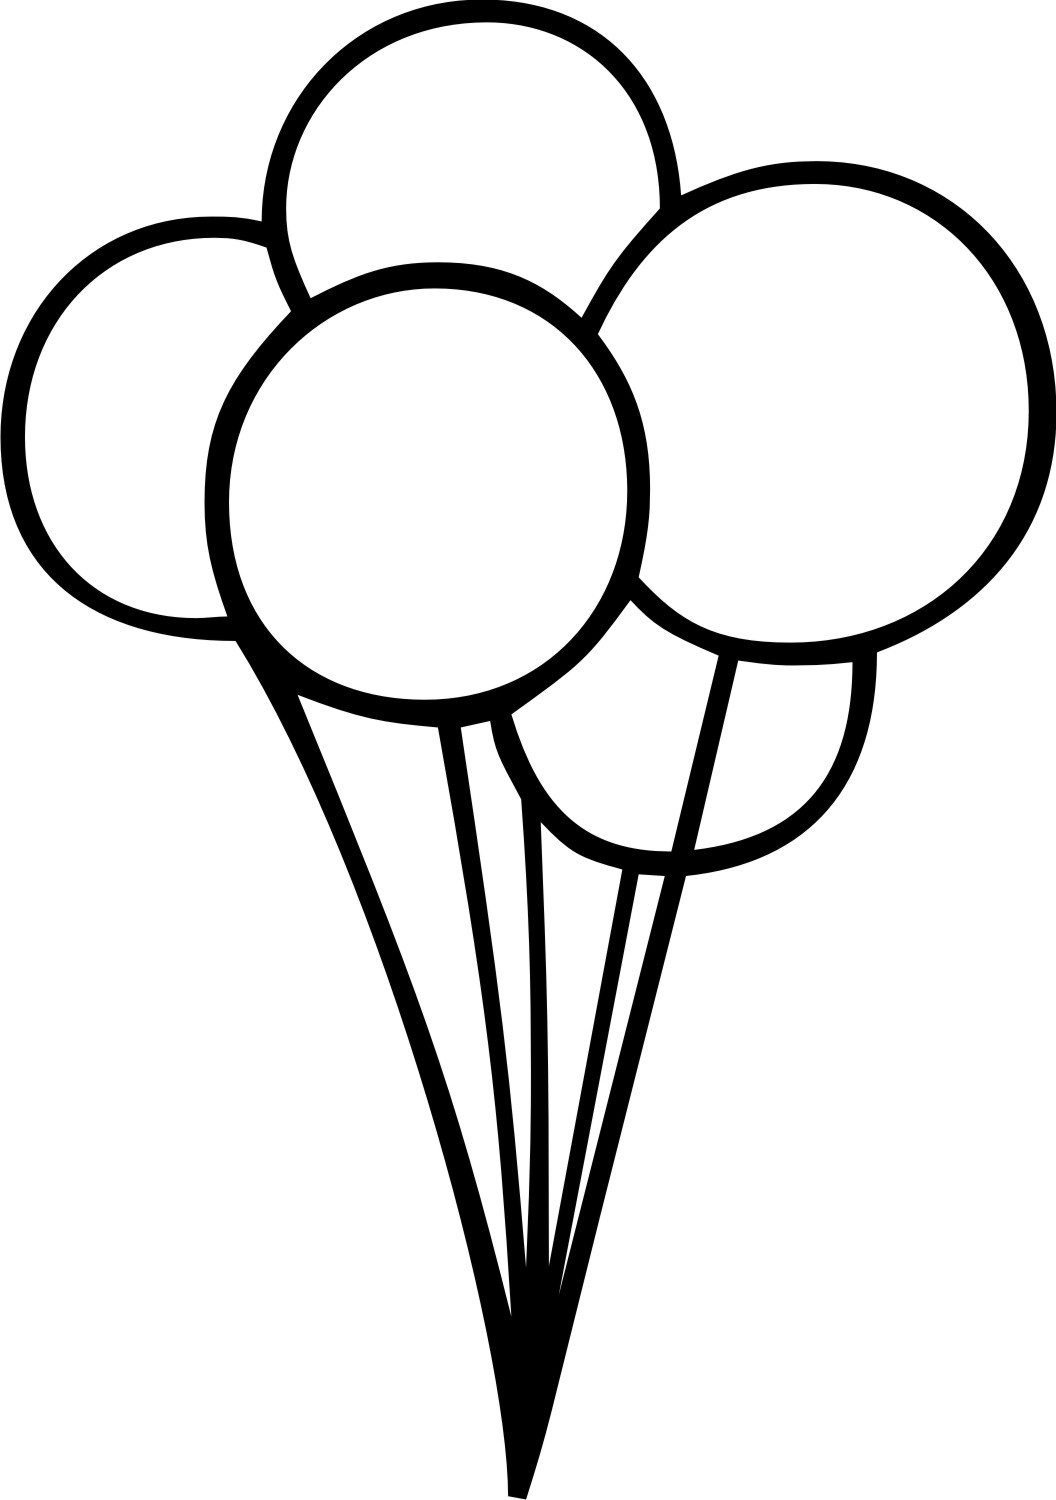 Free Balloon Outline, Download Free Clip Art, Free Clip Art on.